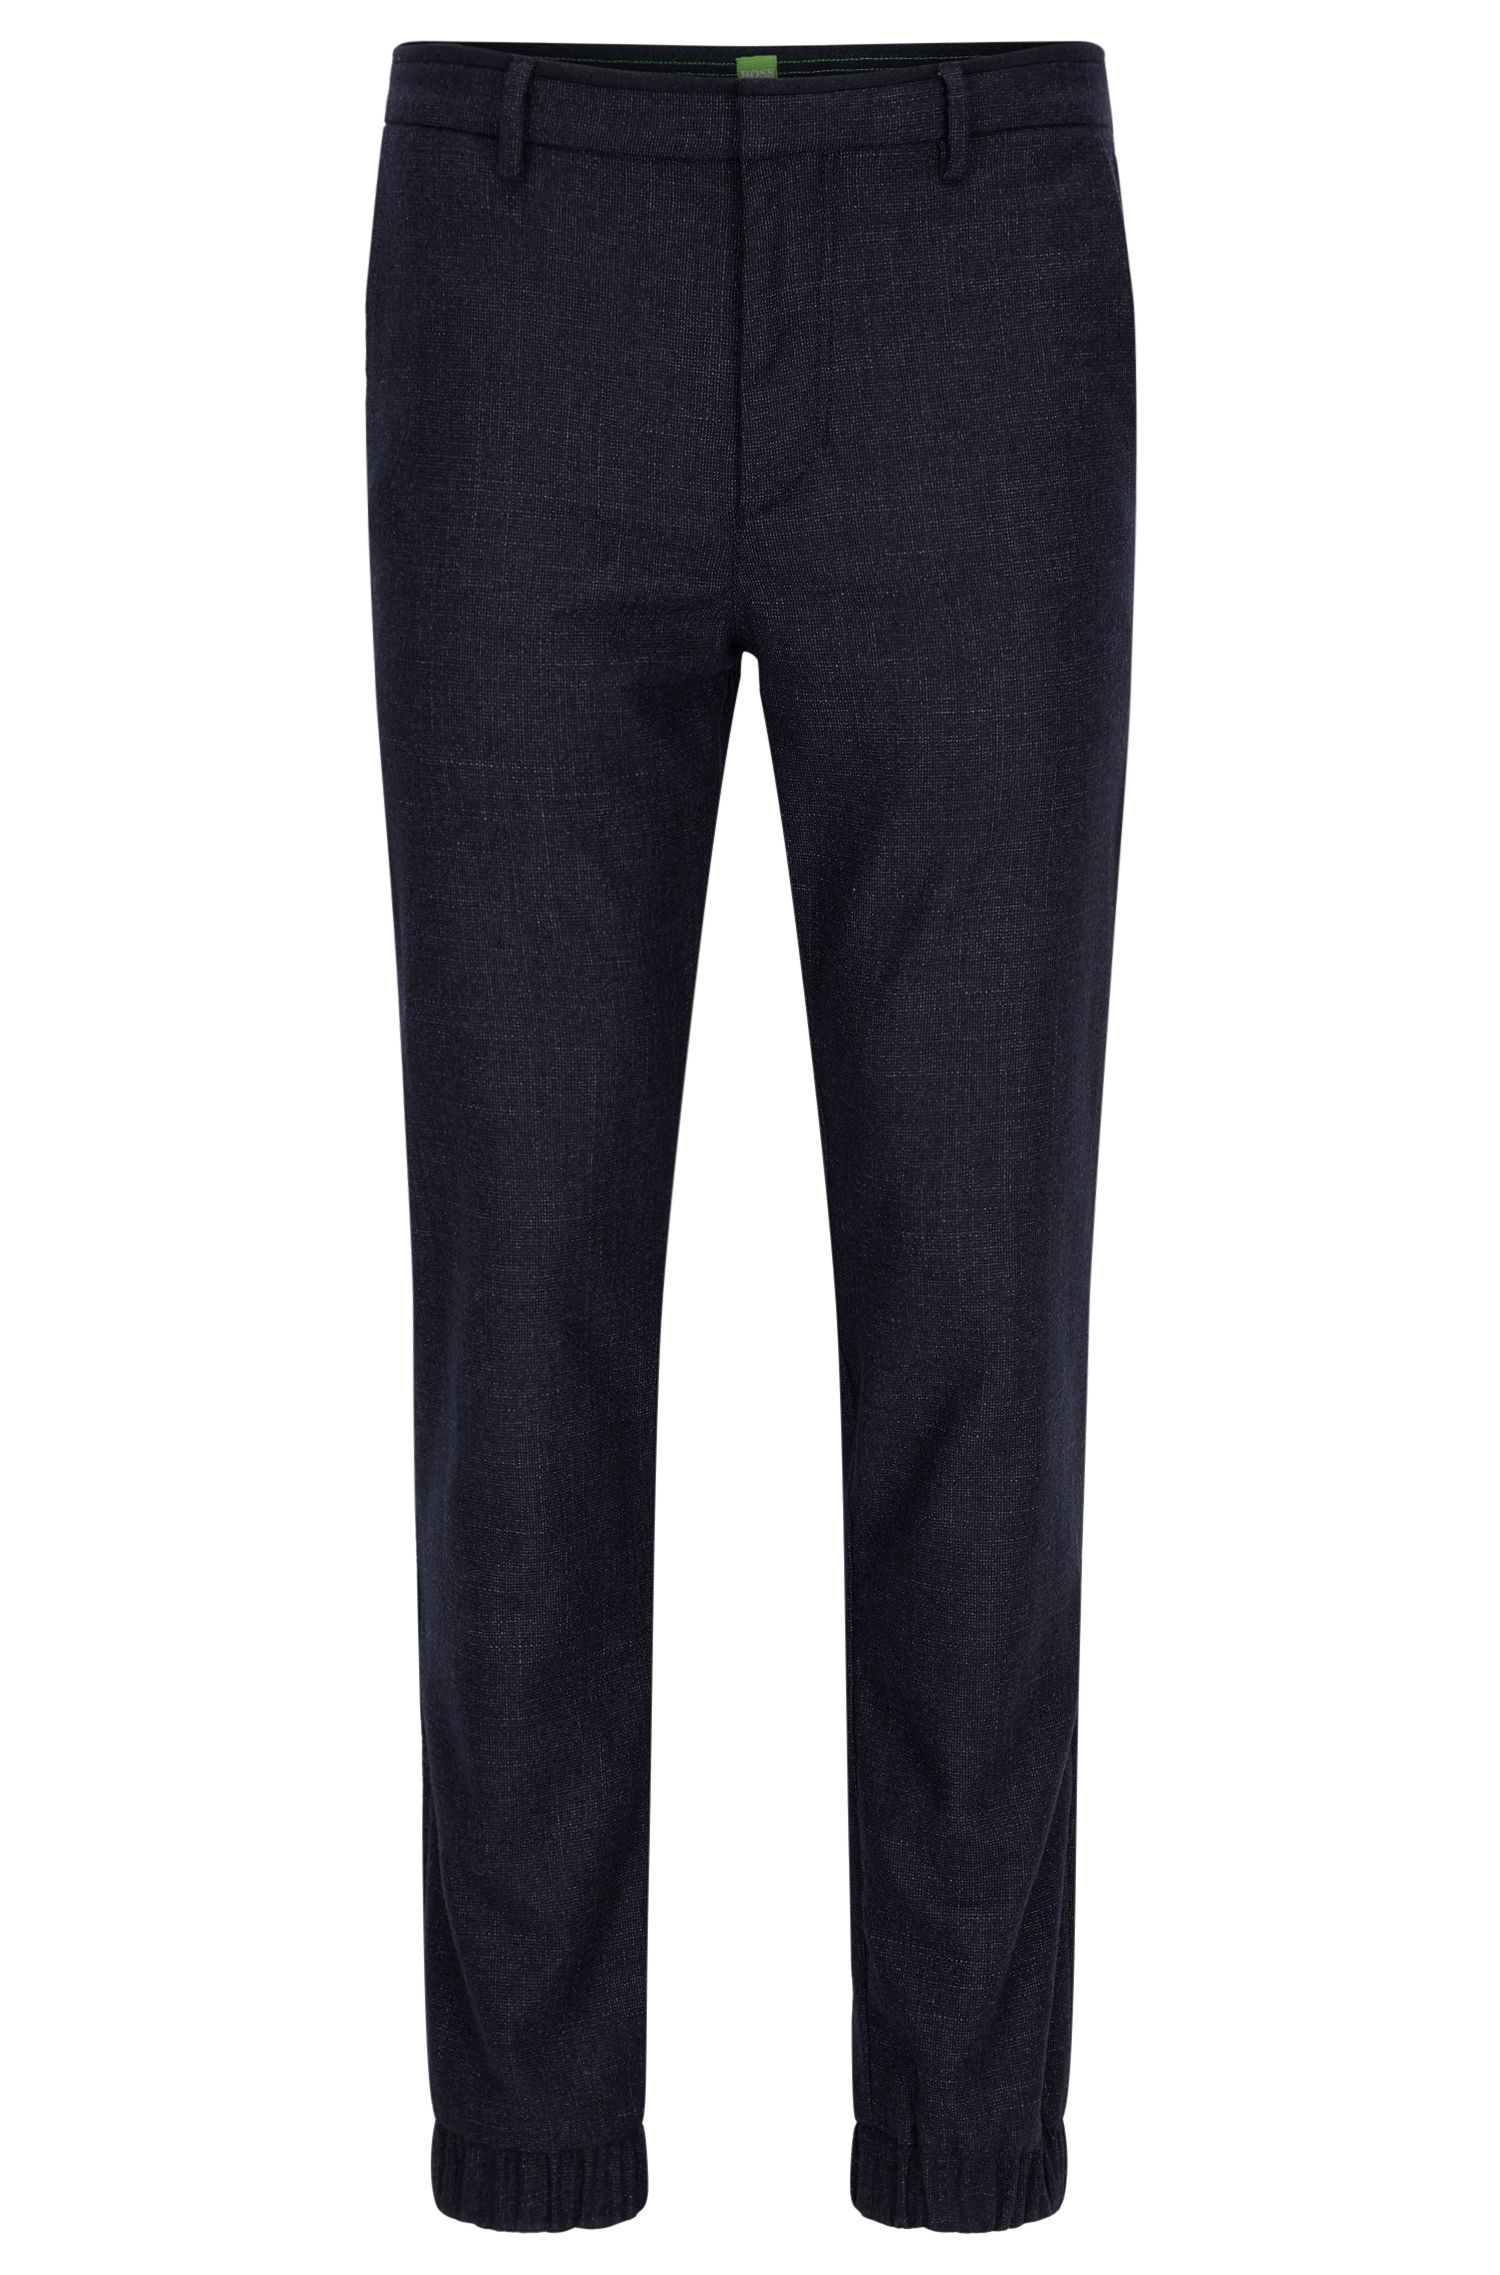 Pantaloni slim fit in tweed di misto lana